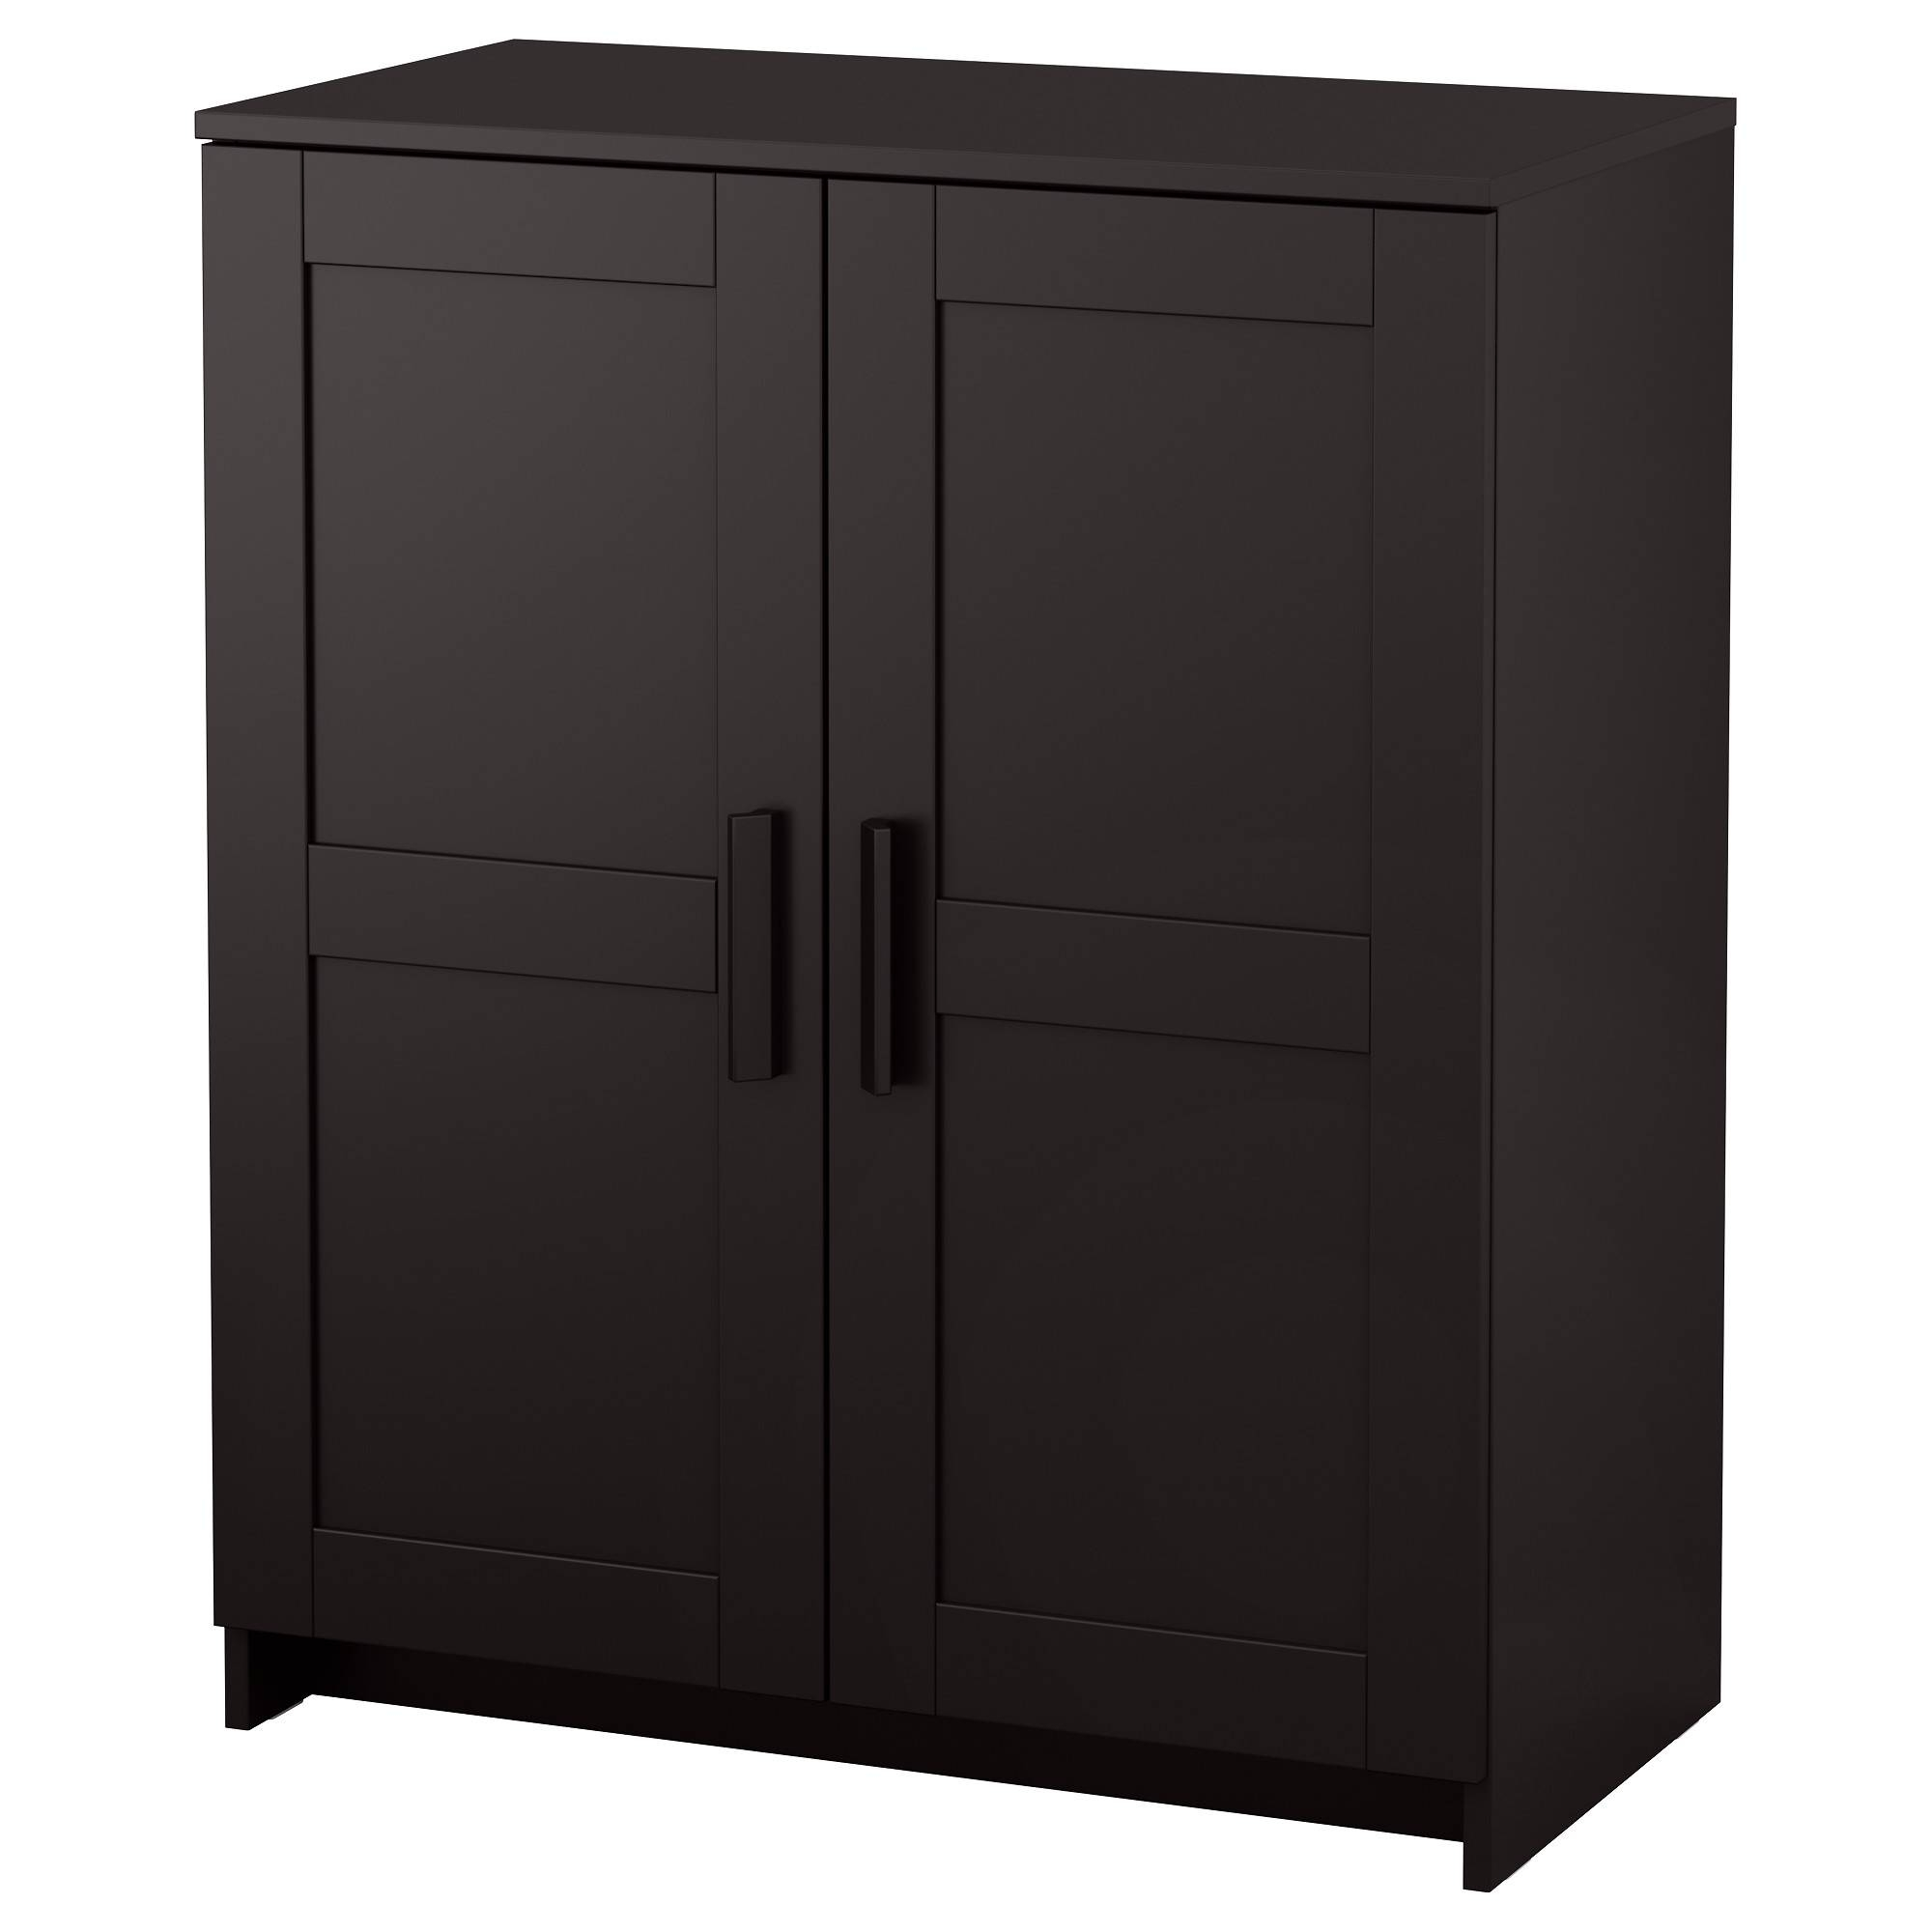 Cabinets & Sideboards - Ikea throughout Free Standing Kitchen Sideboards (Image 5 of 30)